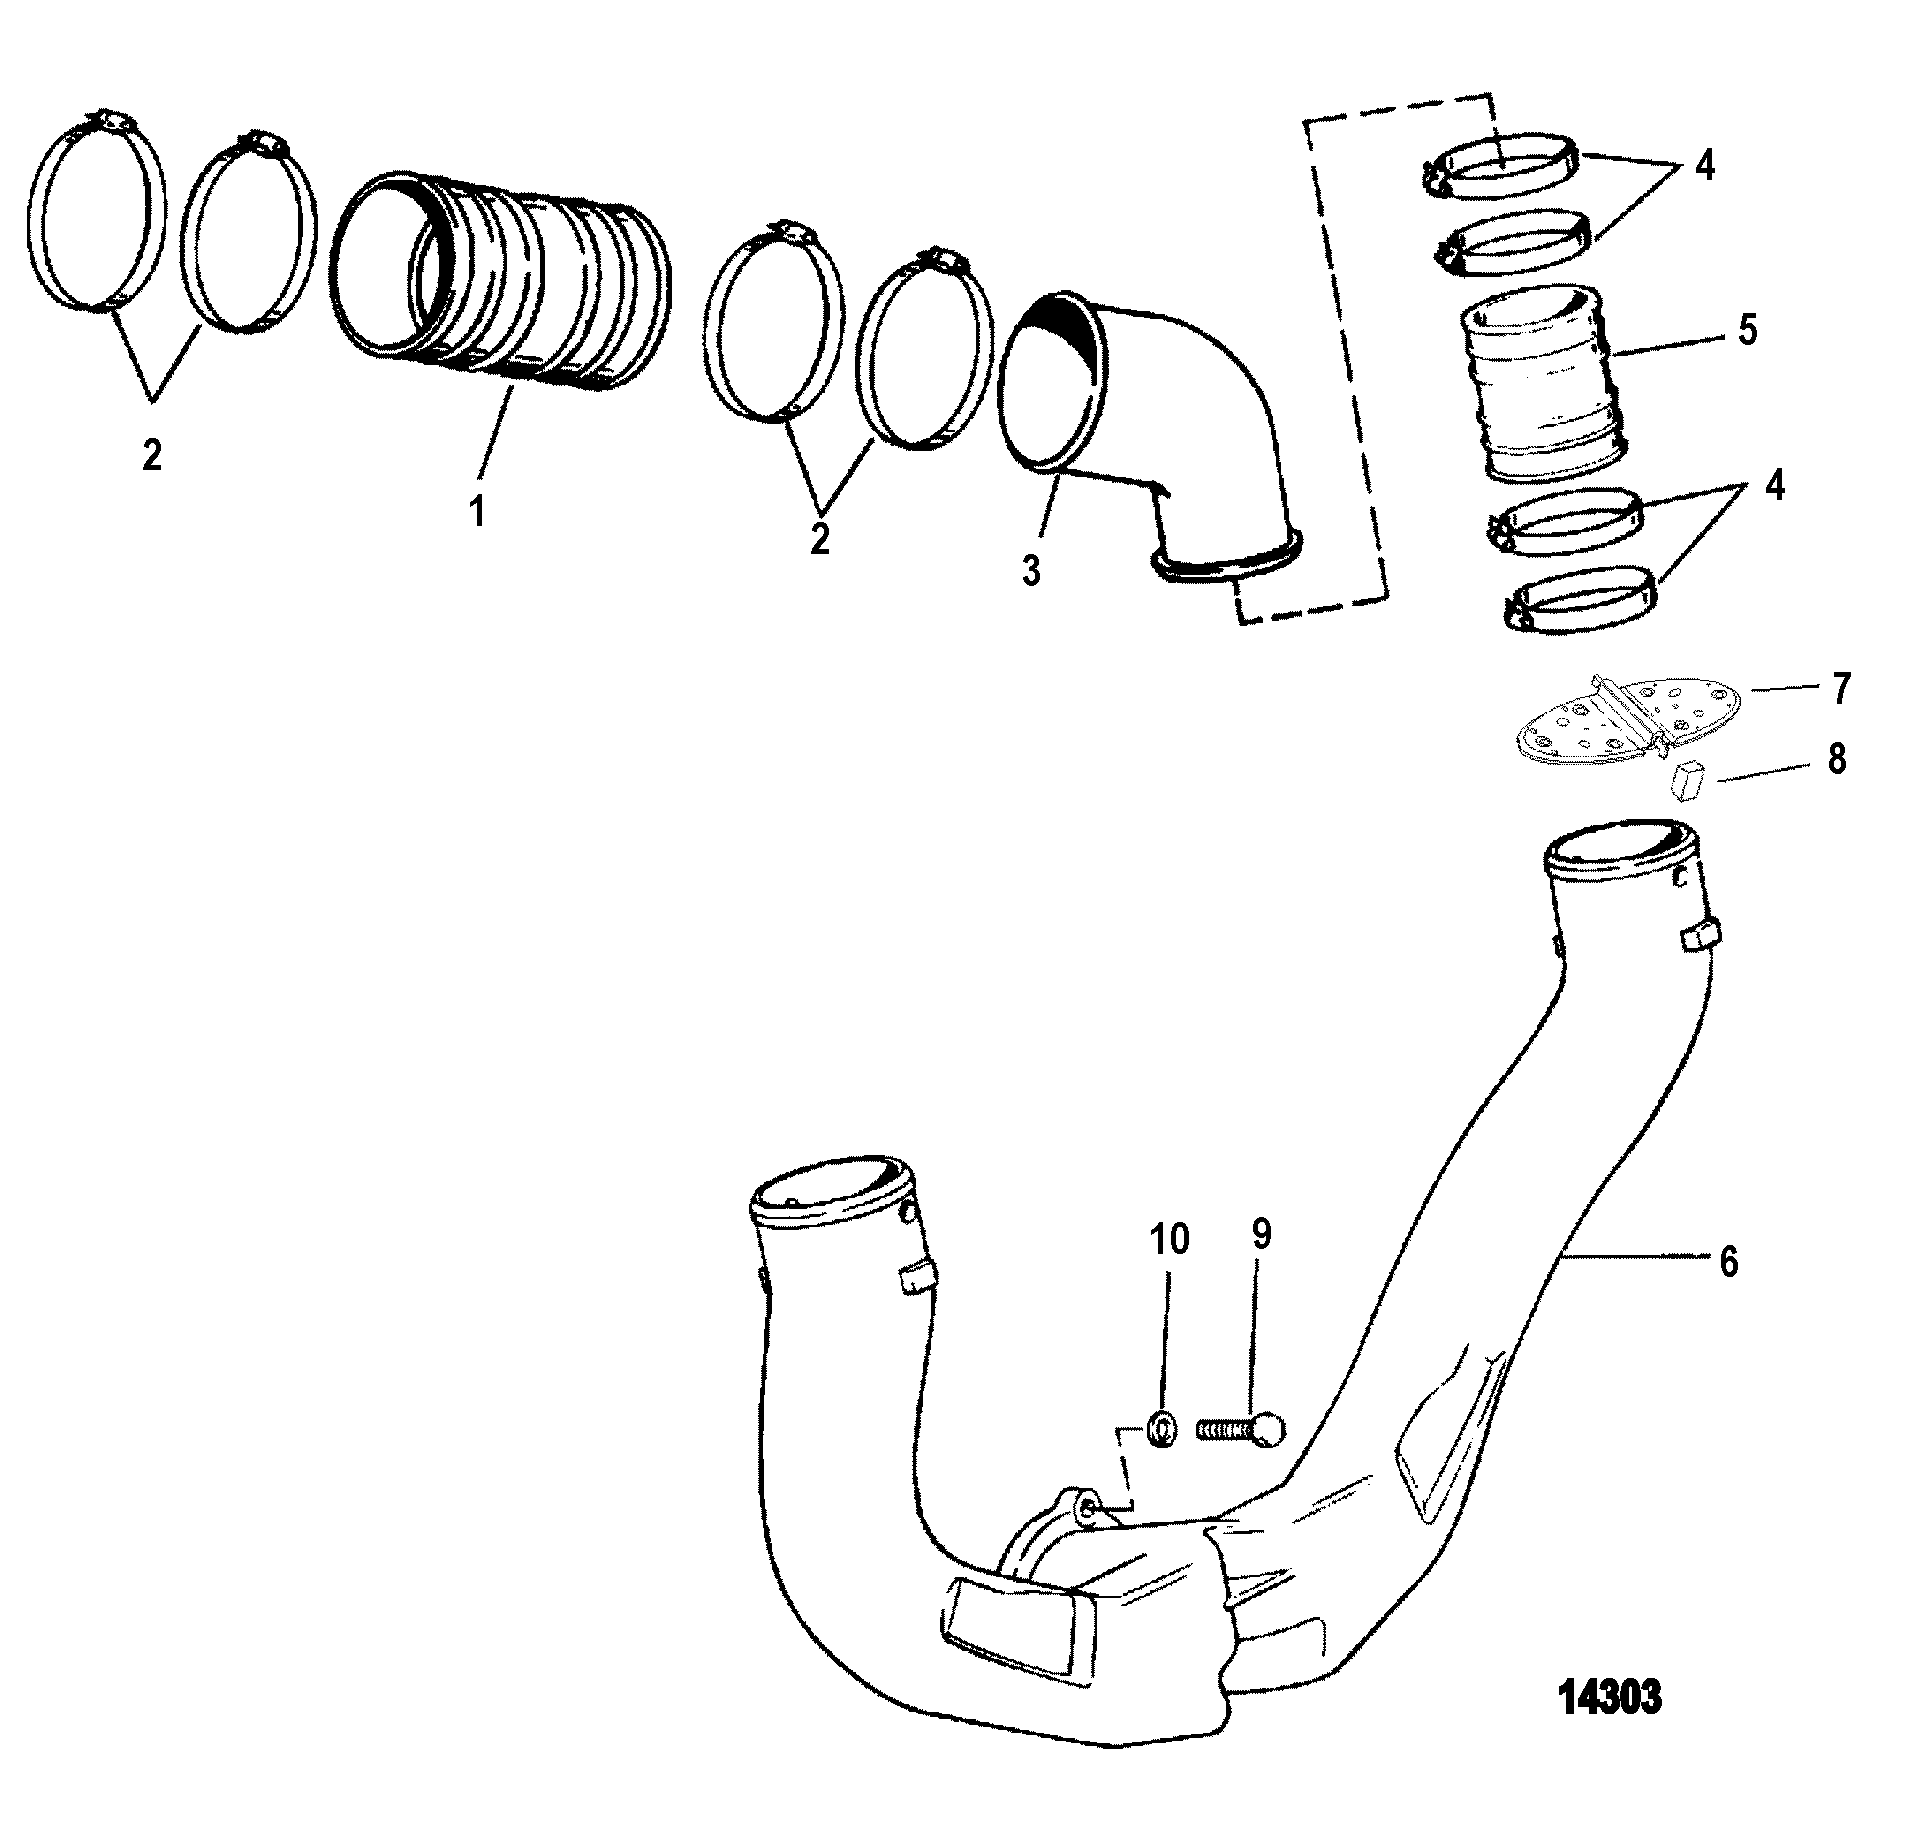 Exhaust System For Mercruiser 4 3l 4 3lx Alpha One Engine 262 Cid